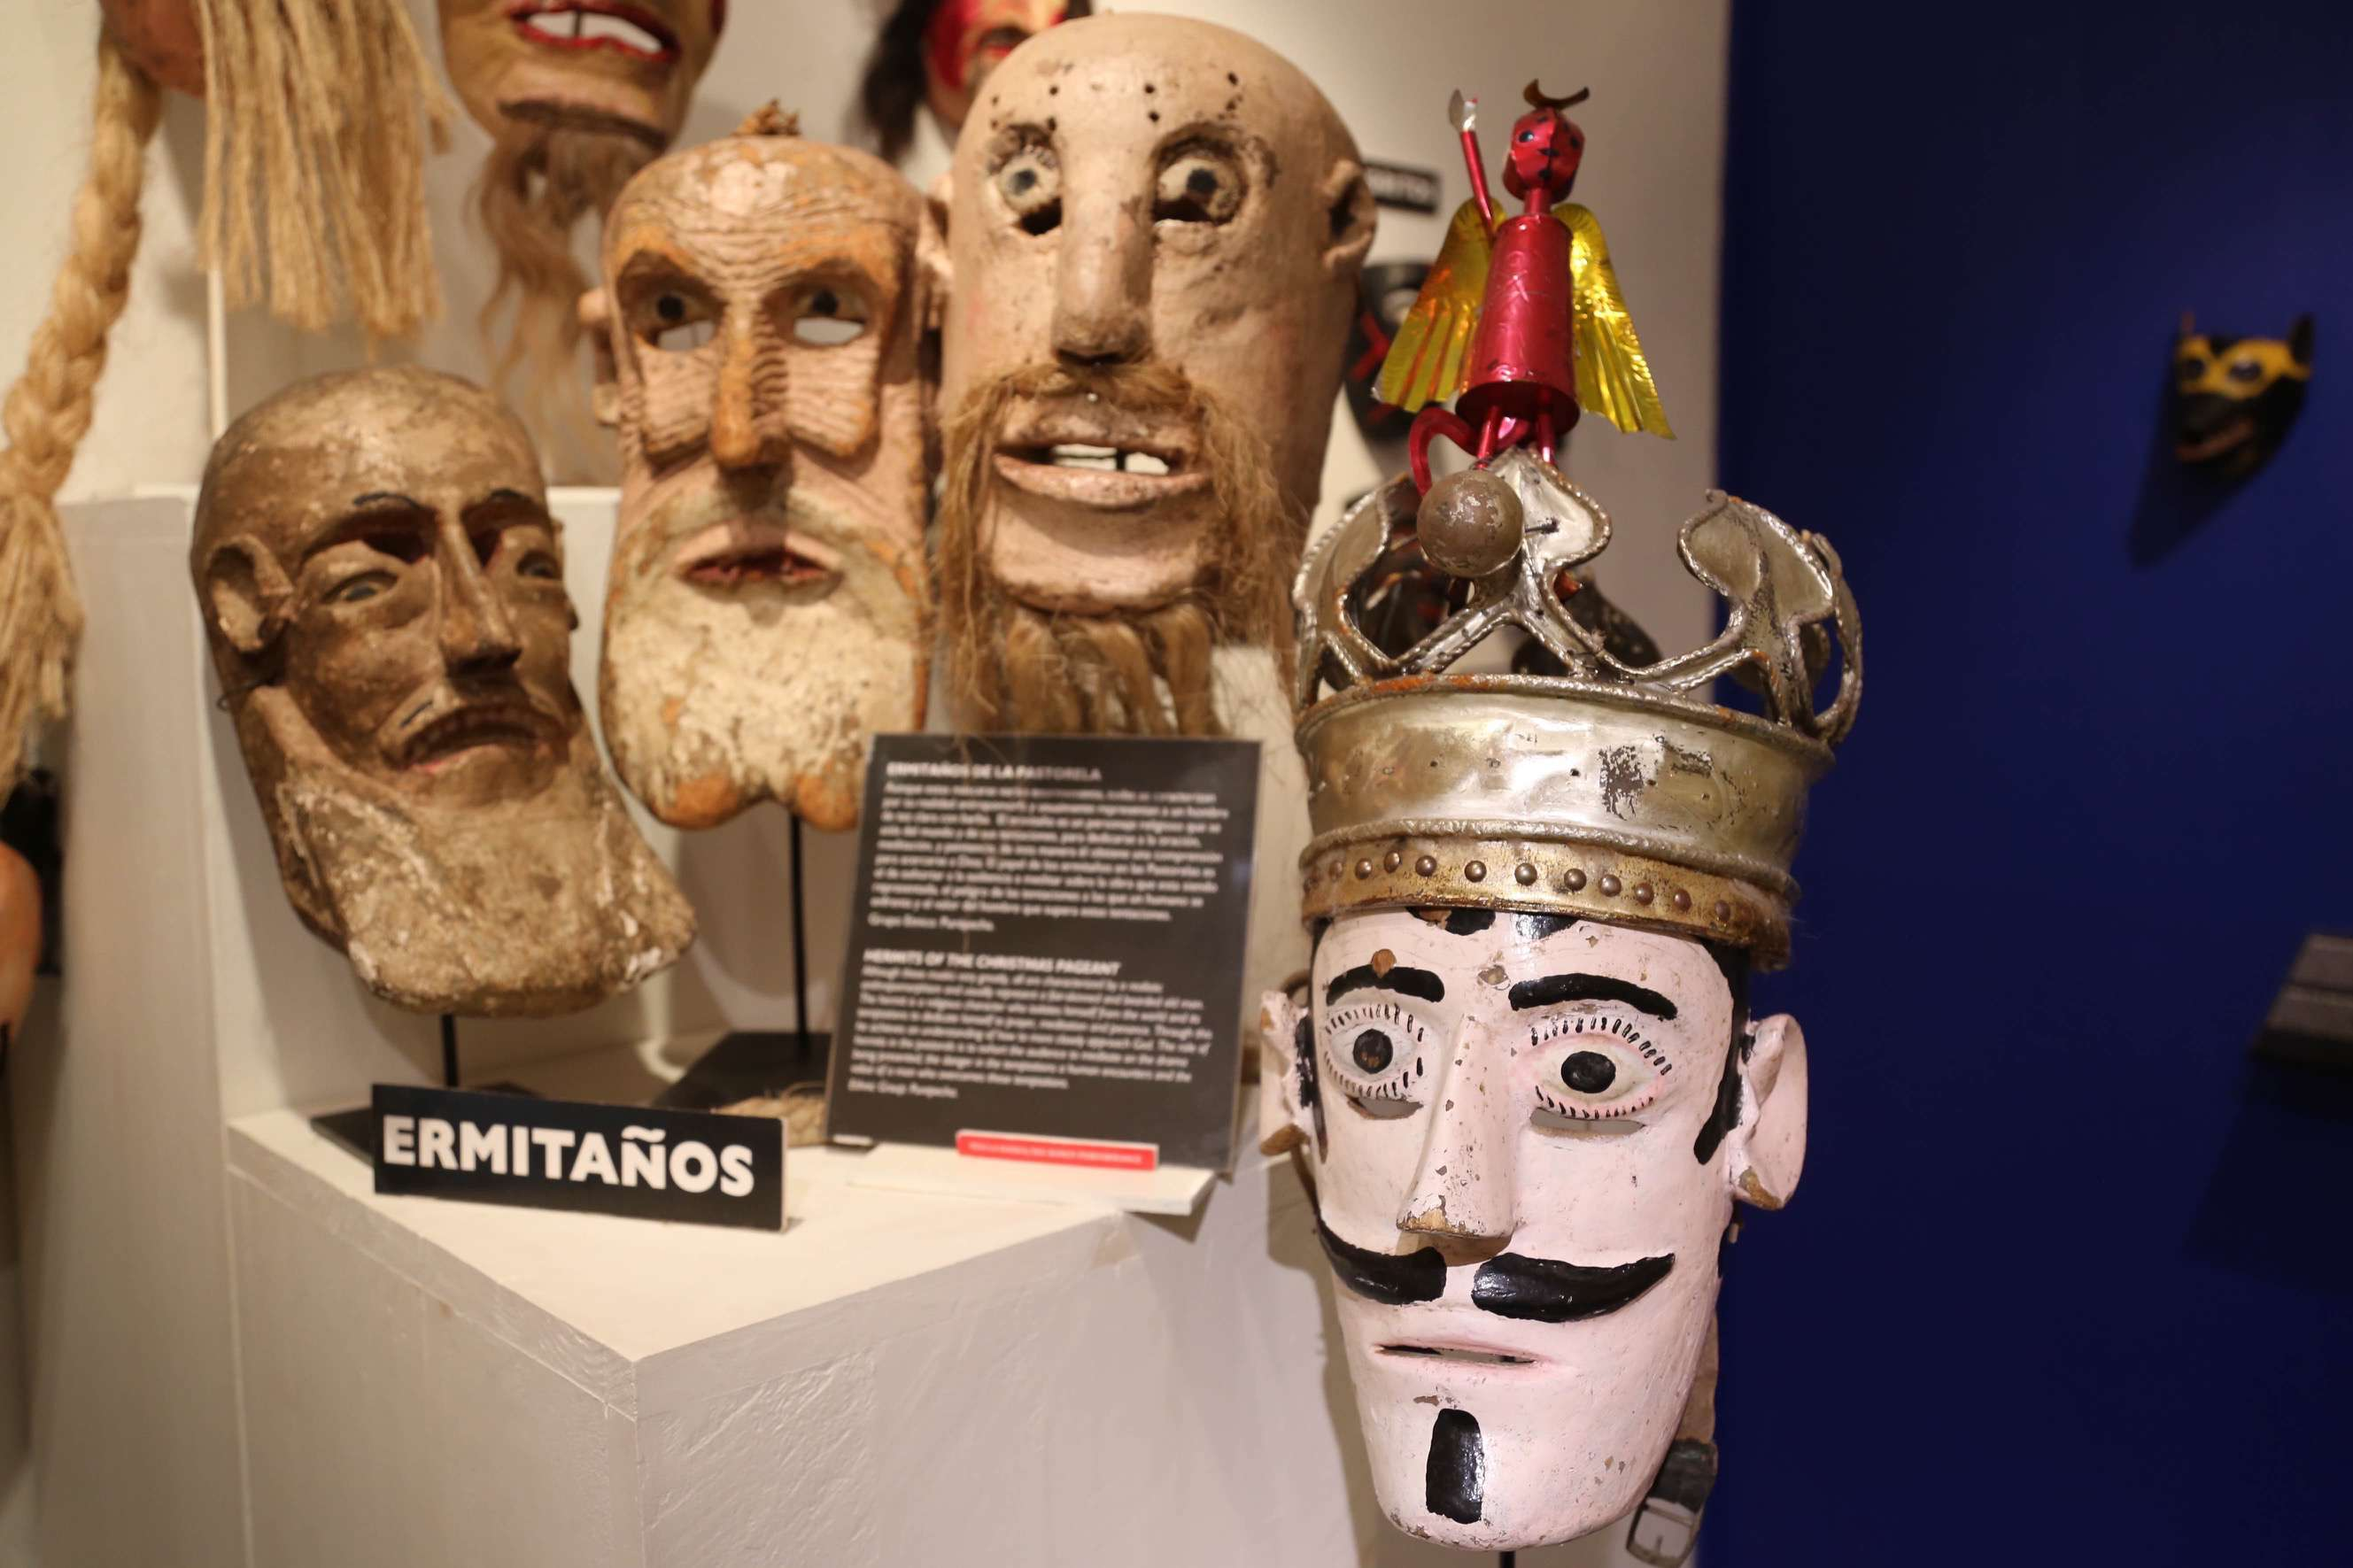 Information signs in both Spanish and English provide museum goers with background on the type of mask and its meaning.